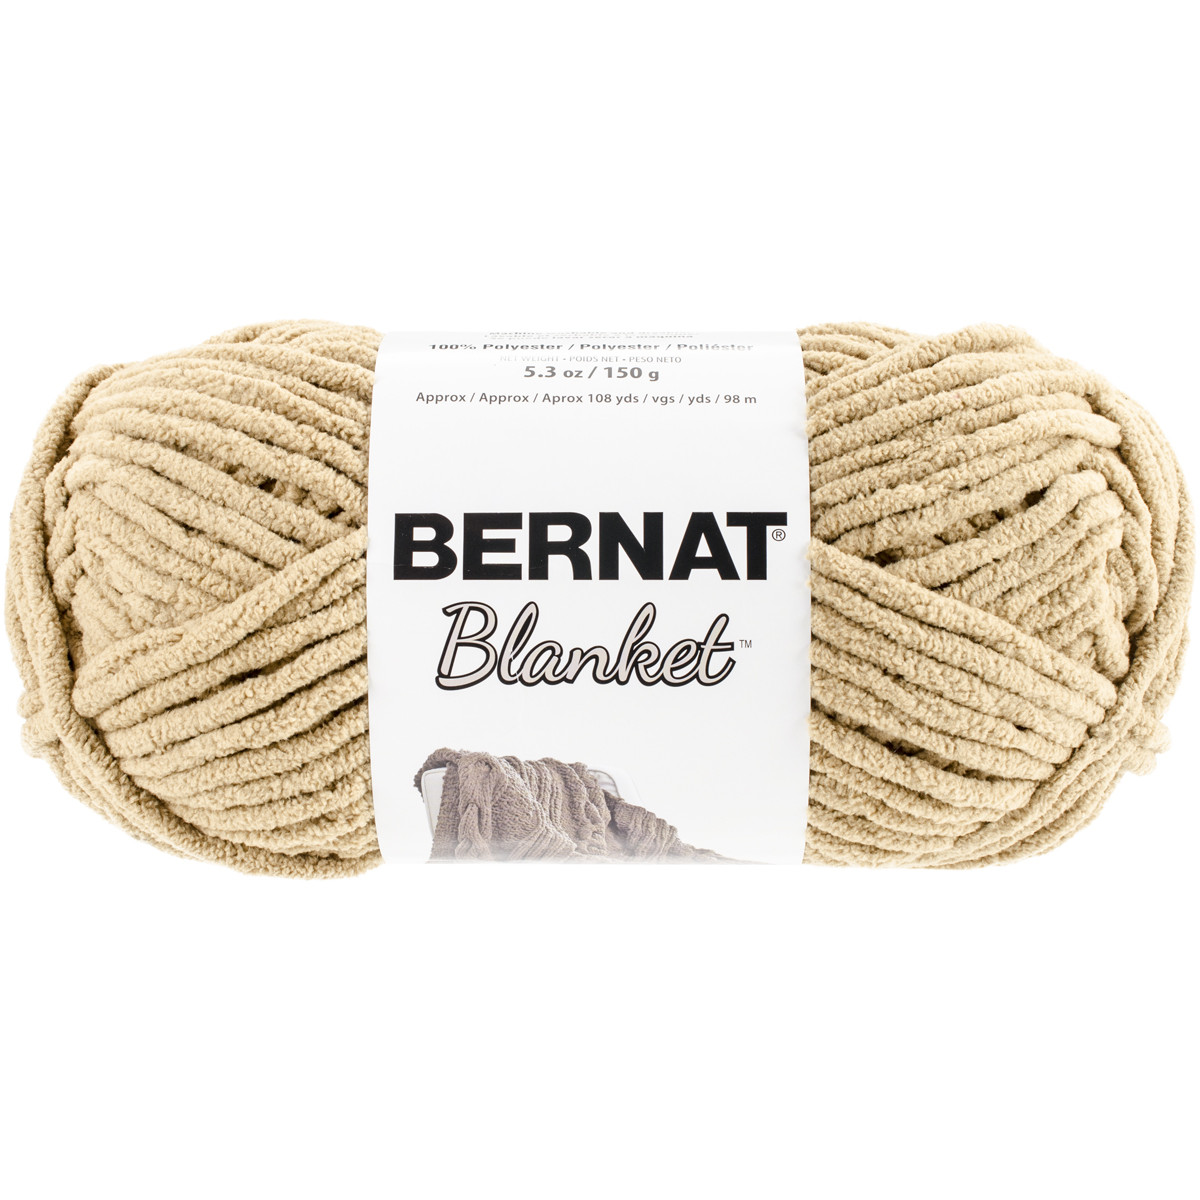 Bernat Blanket Yarn Fresh Bernat Wmperm for Of Beautiful 42 Models Bernat Blanket Yarn